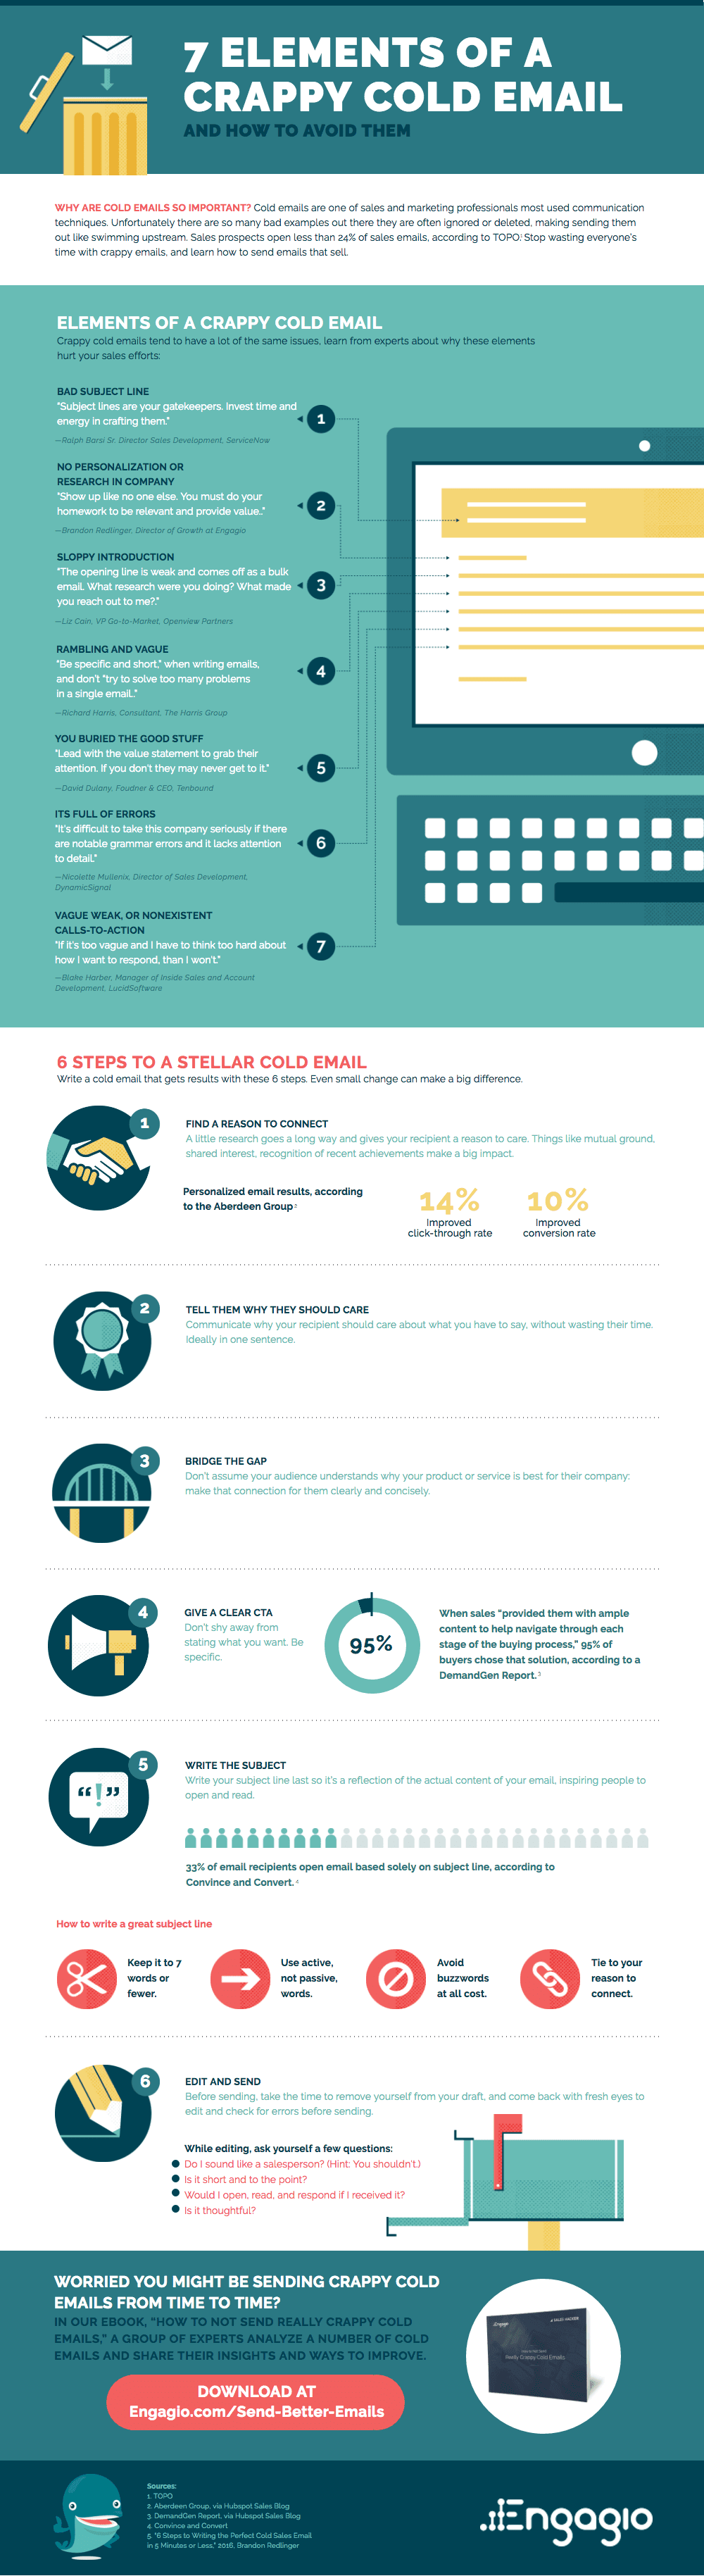 7 Elements of a Crappy Cold Email and How to Avoid Them - #Infographic